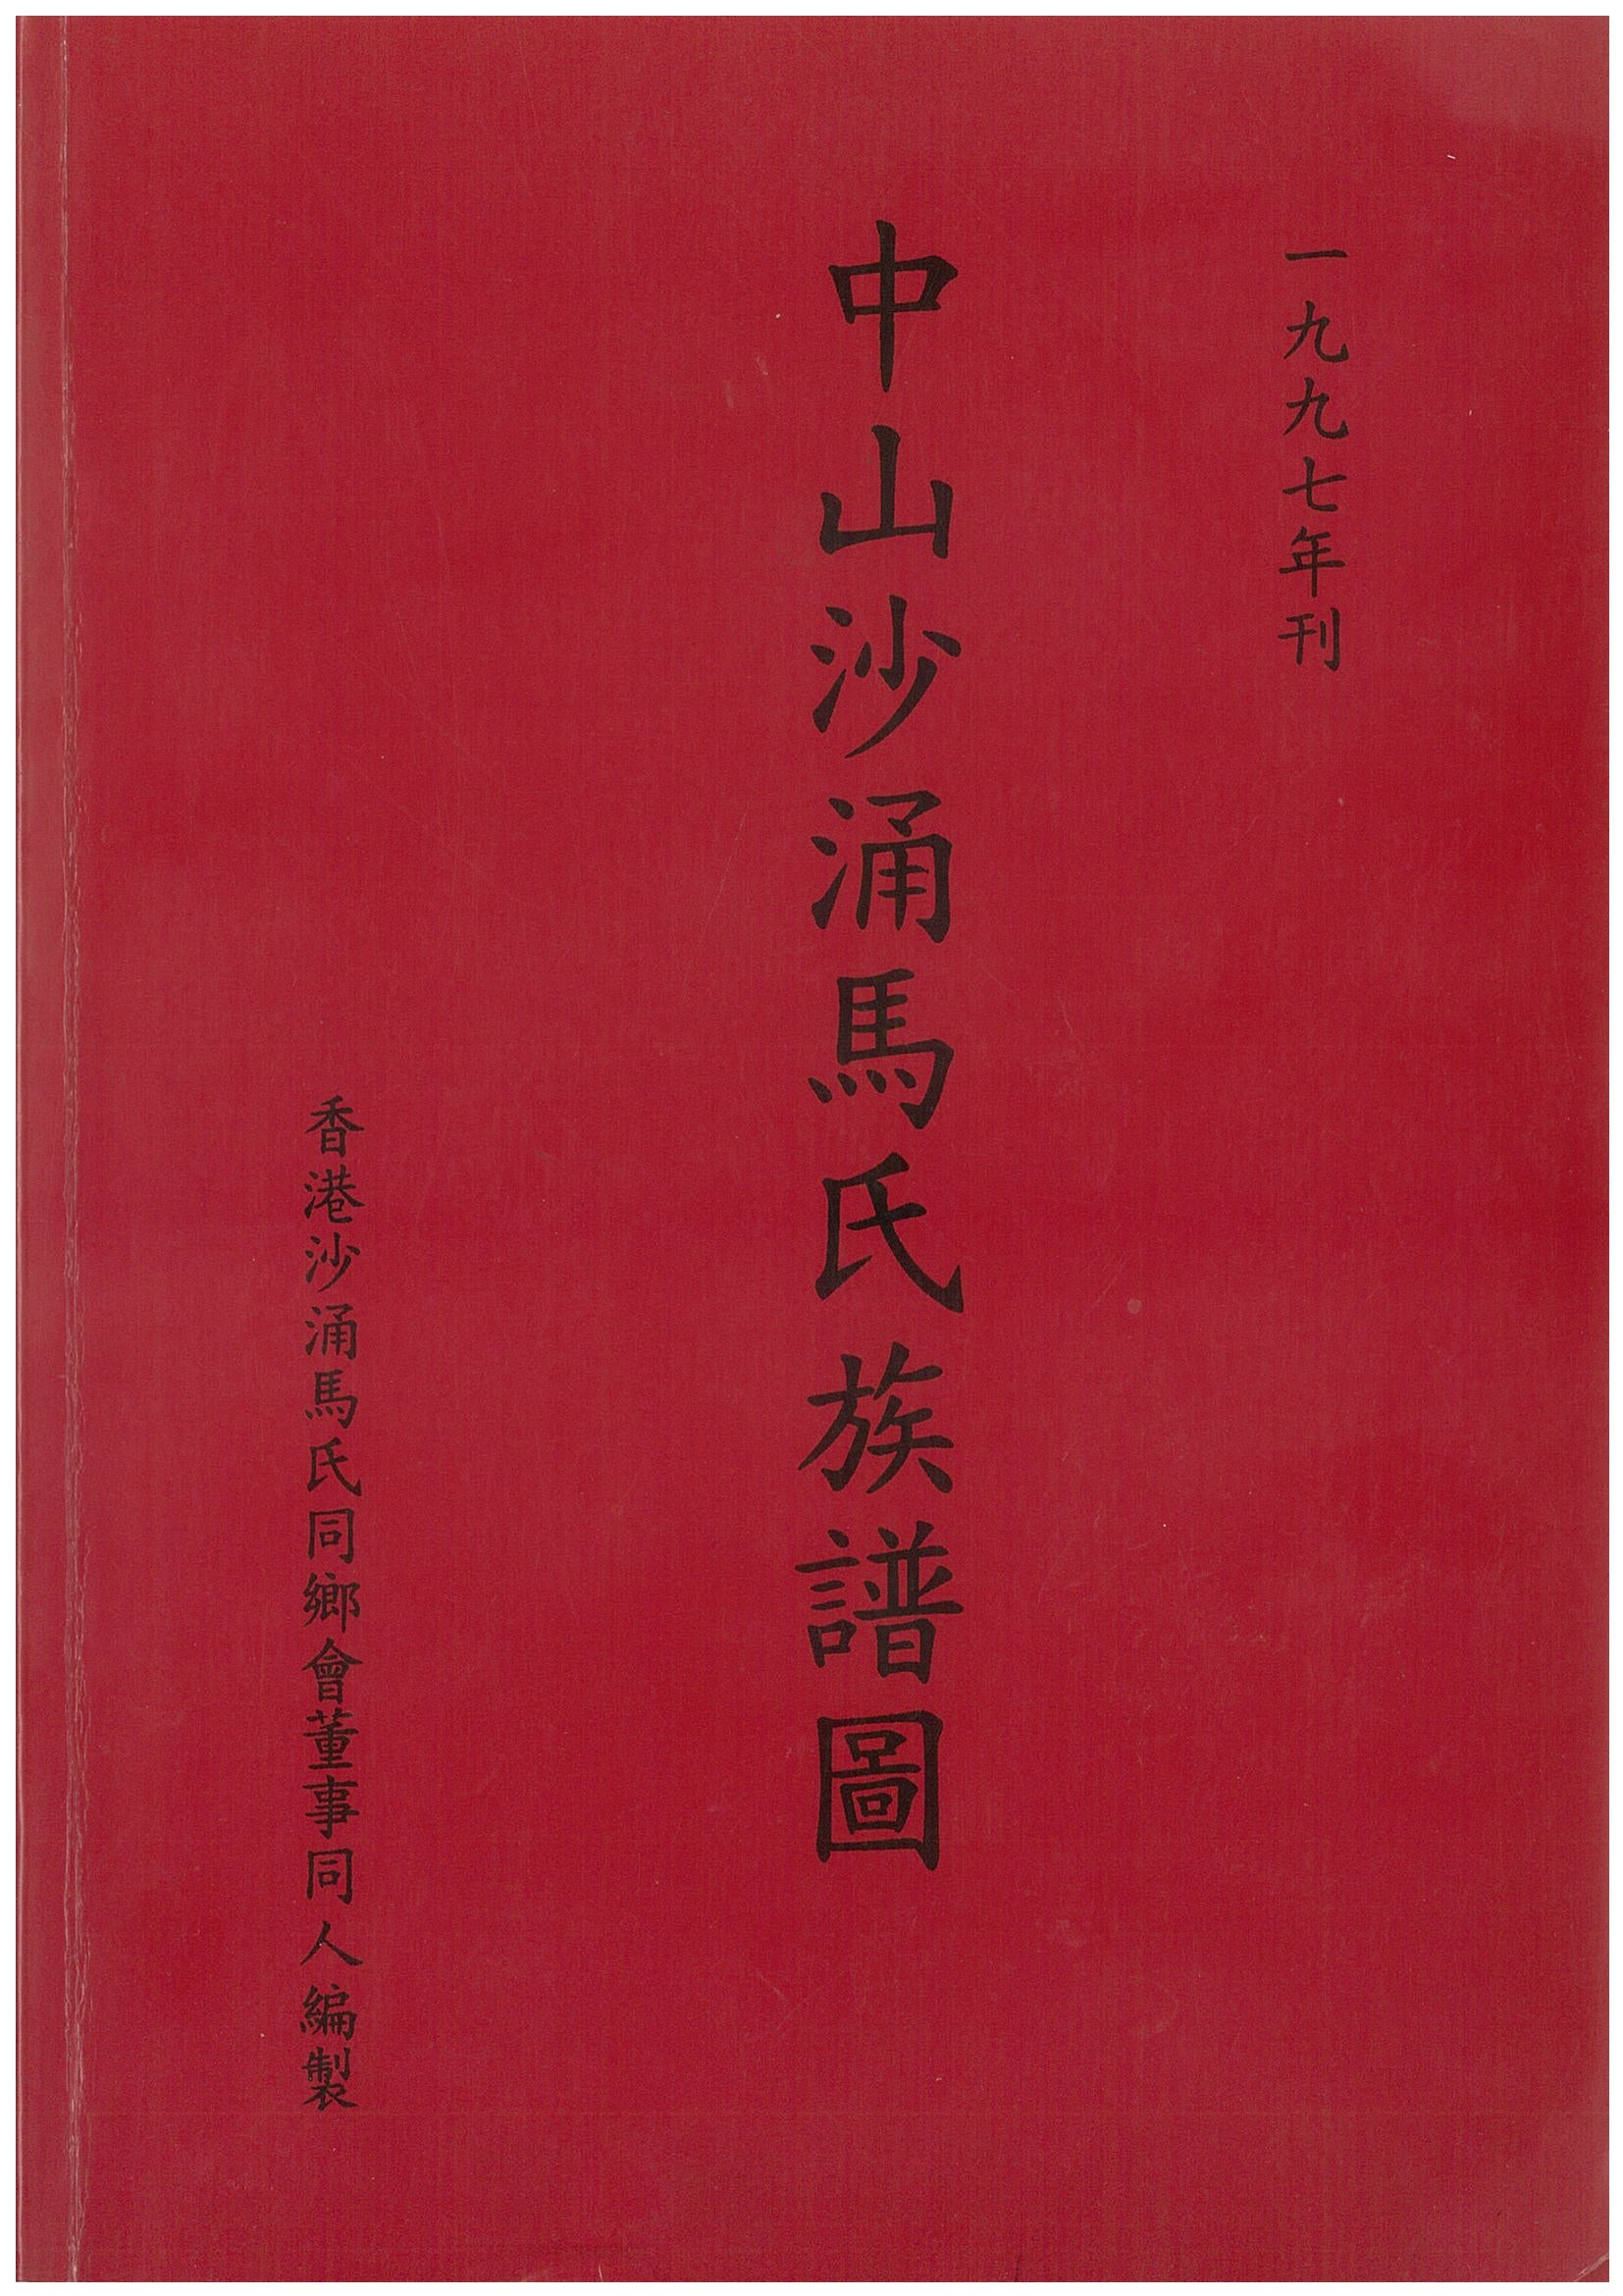 The genealogy book of the Mar clan in Shachong village, Zhongshan